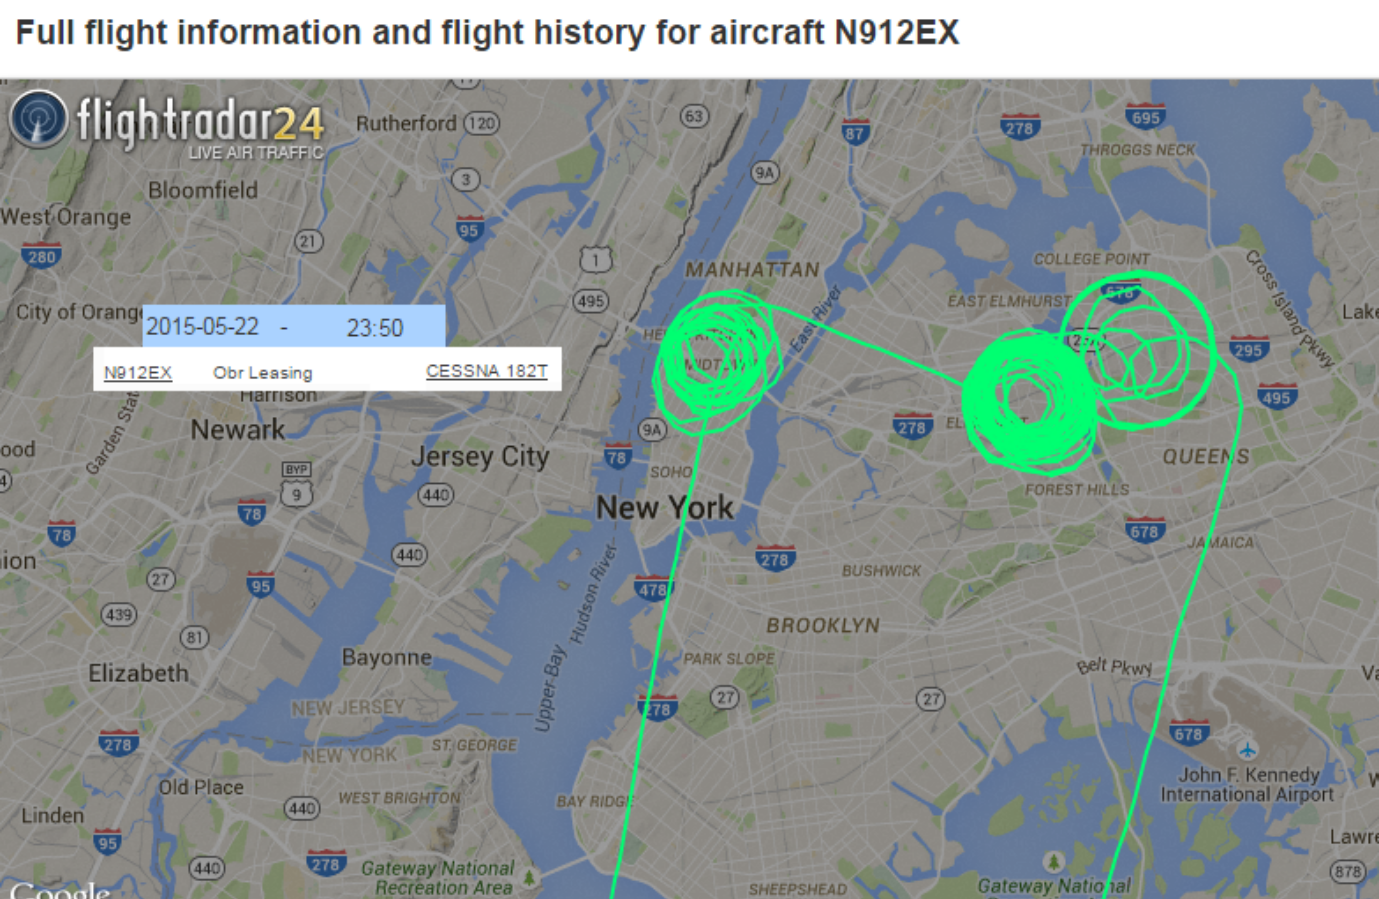 Bizarre flightpaths hovering over New York City